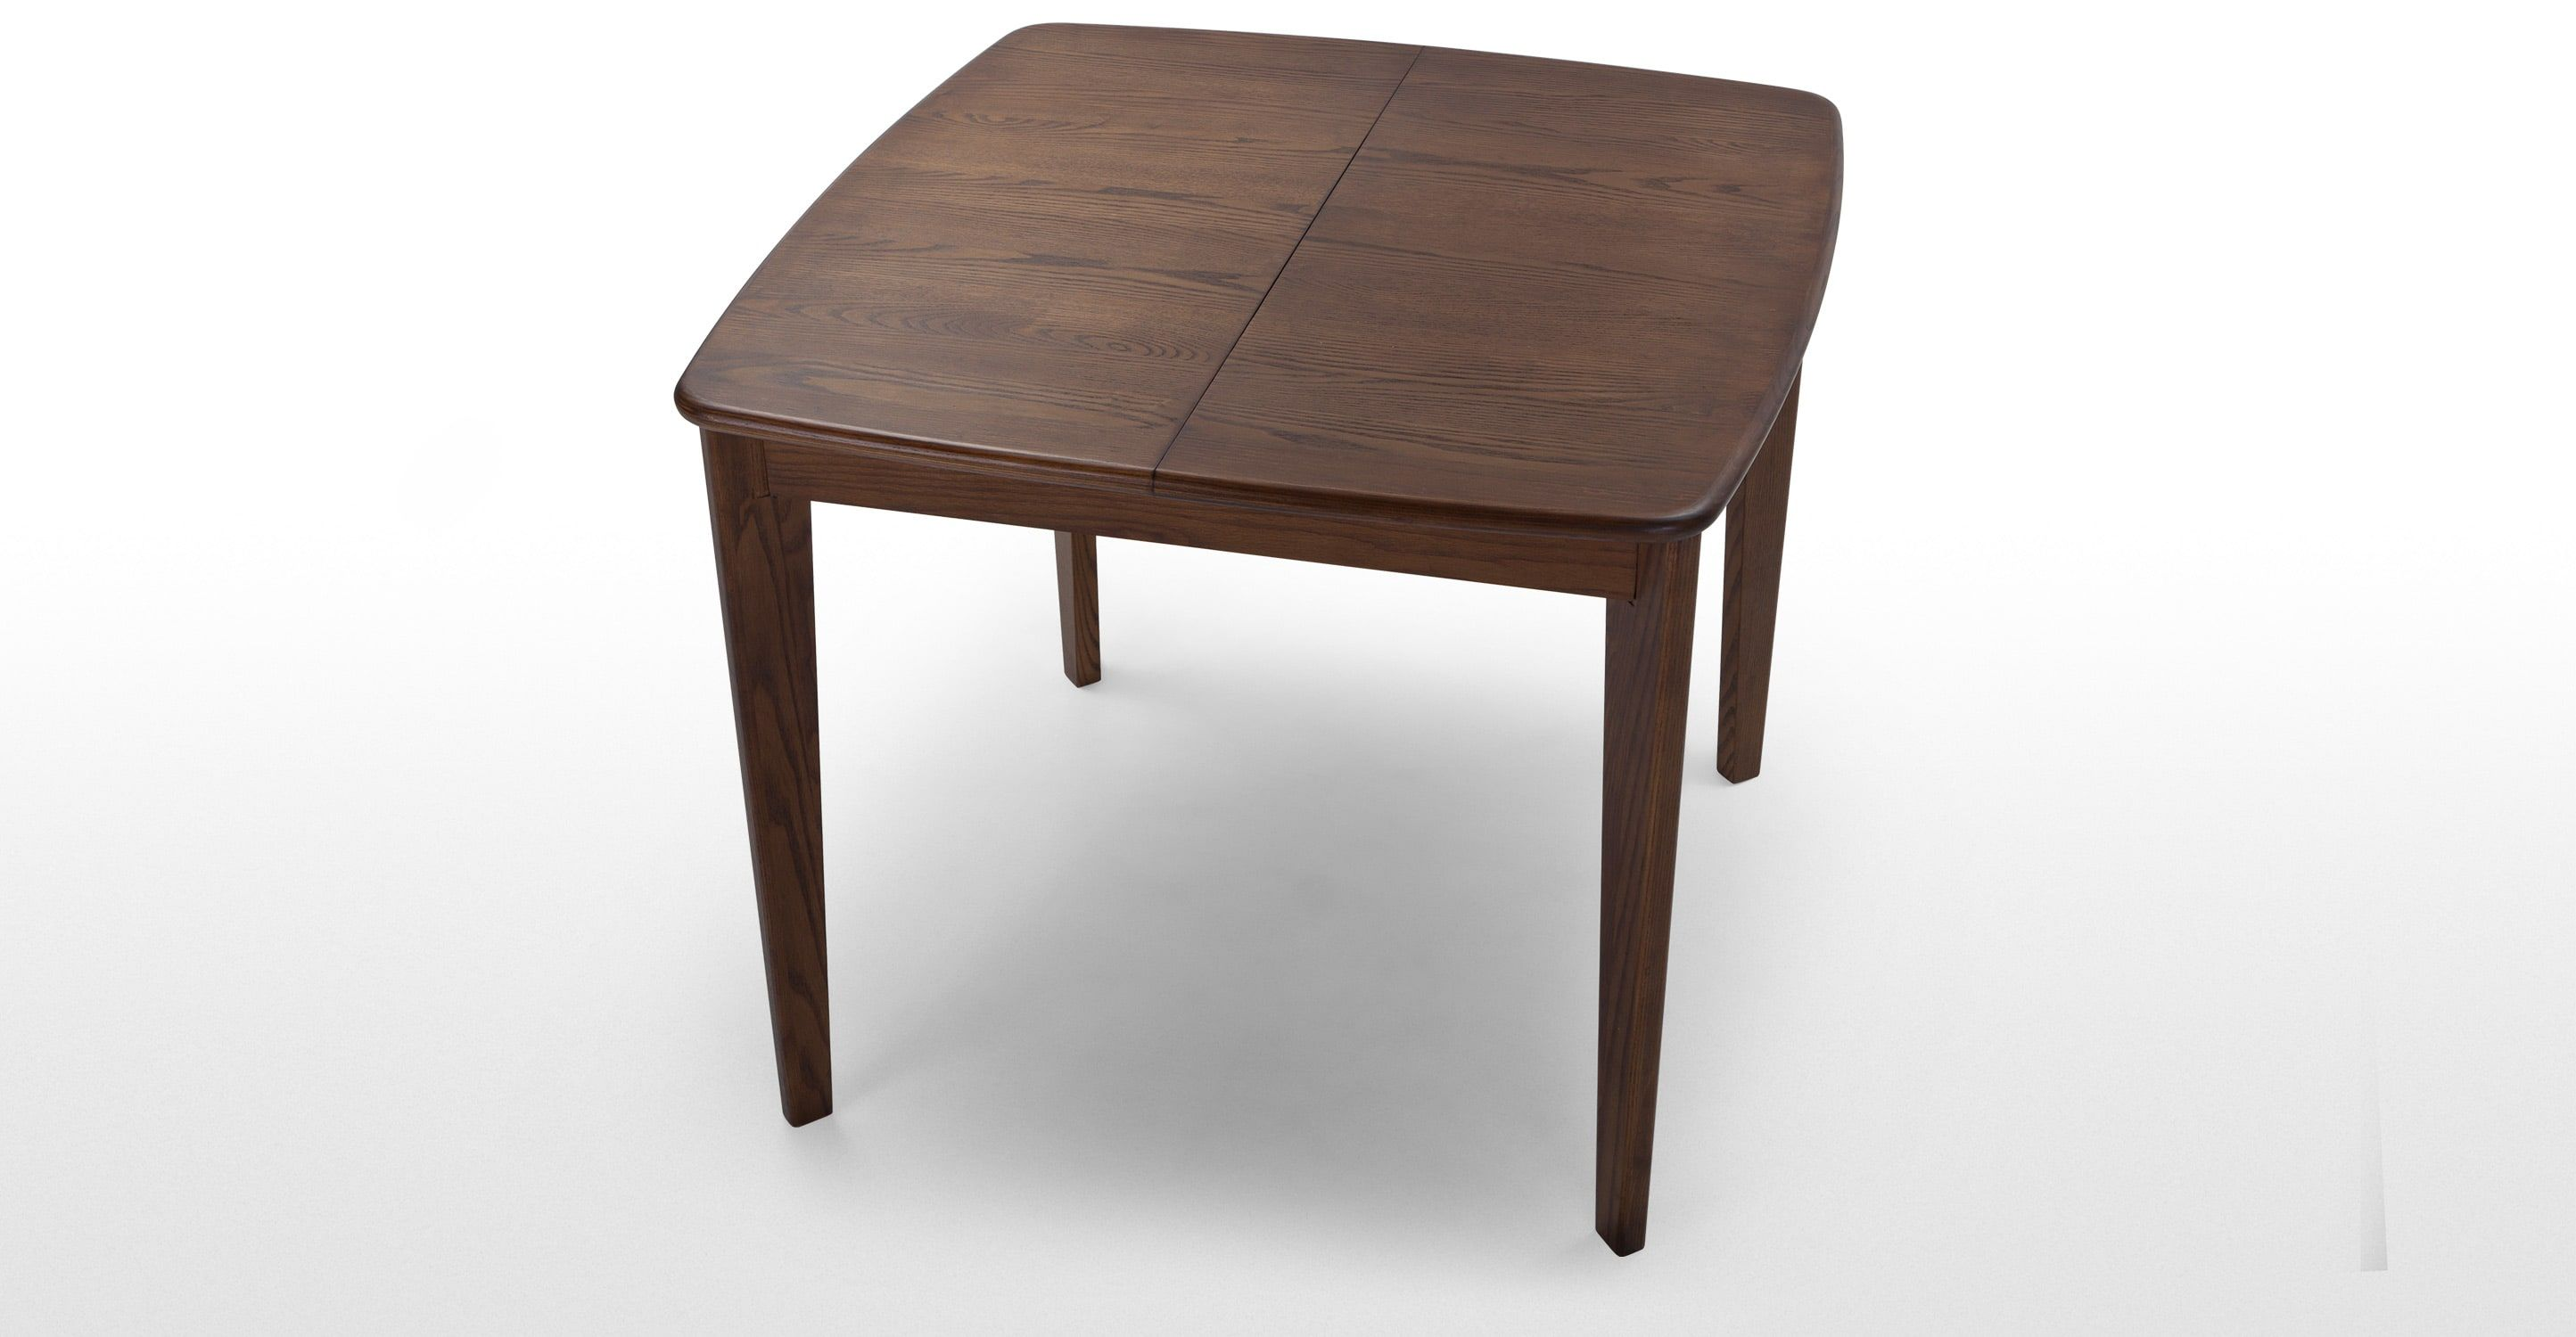 Monty 2 4 Seat Extending Dining Table Dark Stain Ash Small Square Dining Table Extendable Dining Table Square Dining Tables